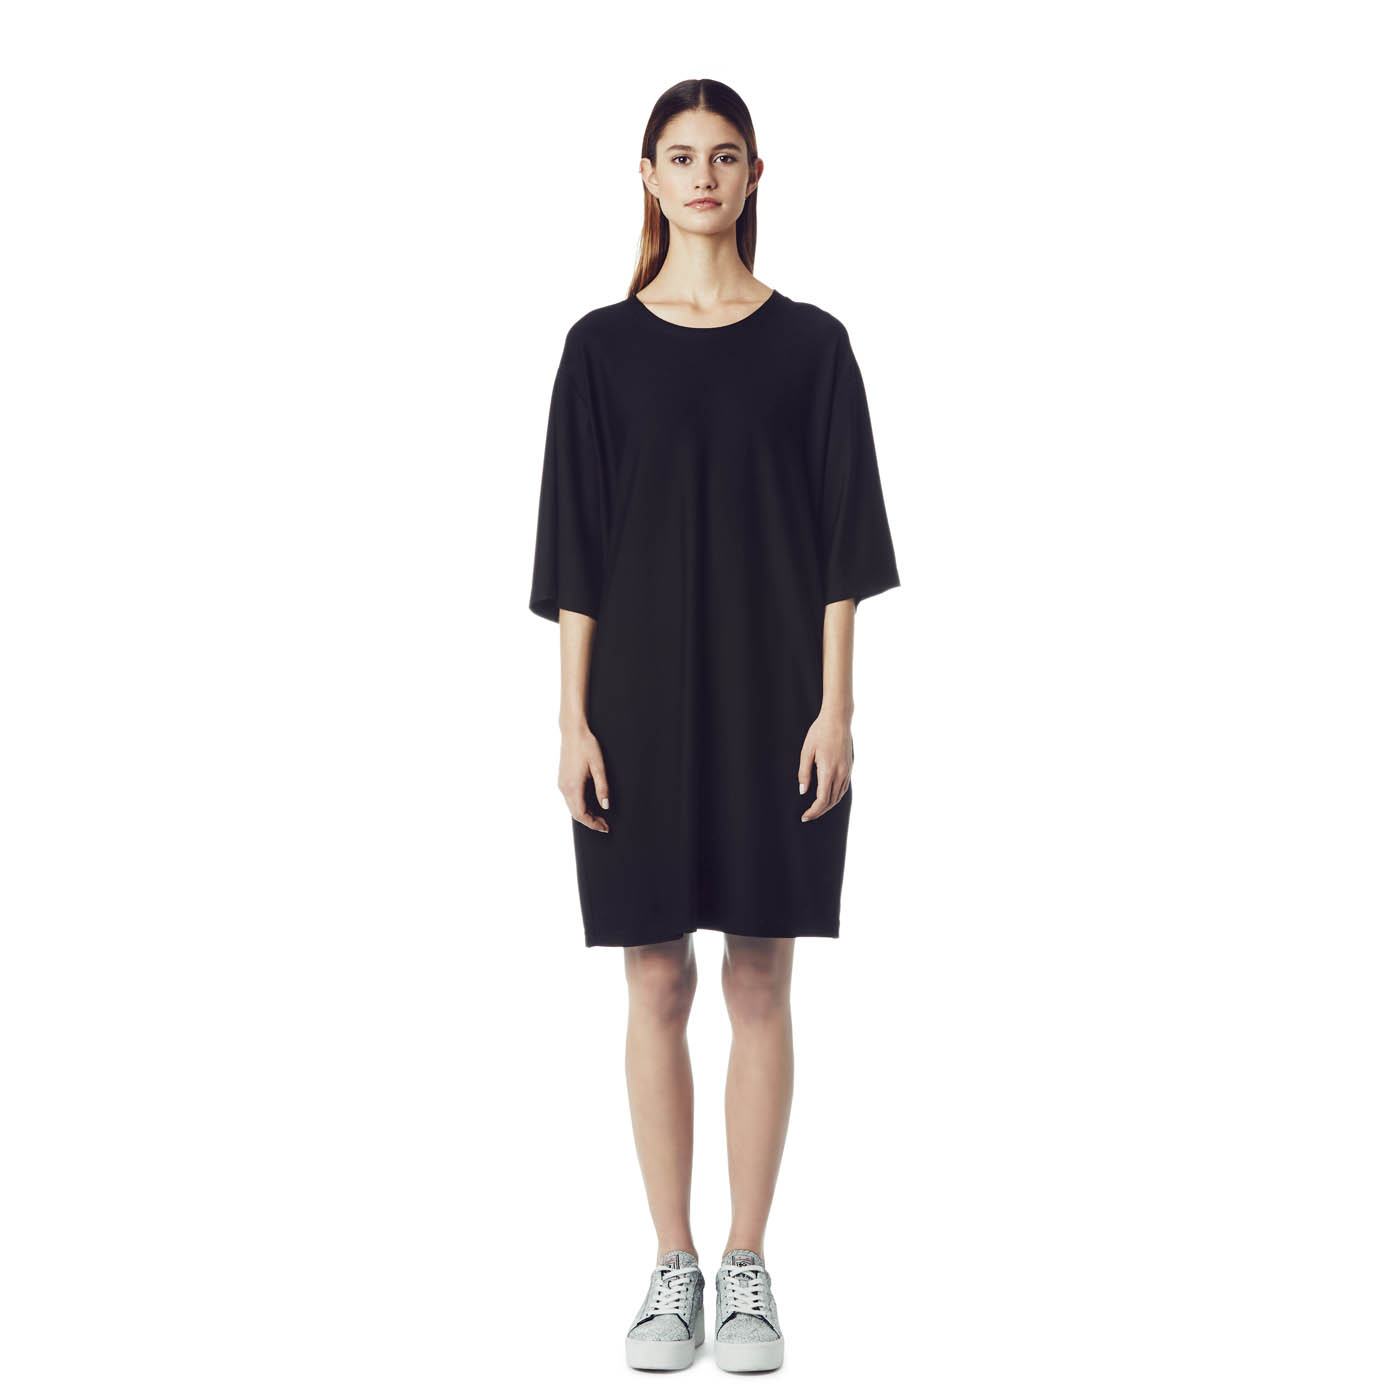 ASH Studio Paris  Ashes Oversized Dress Black 265004 (001)